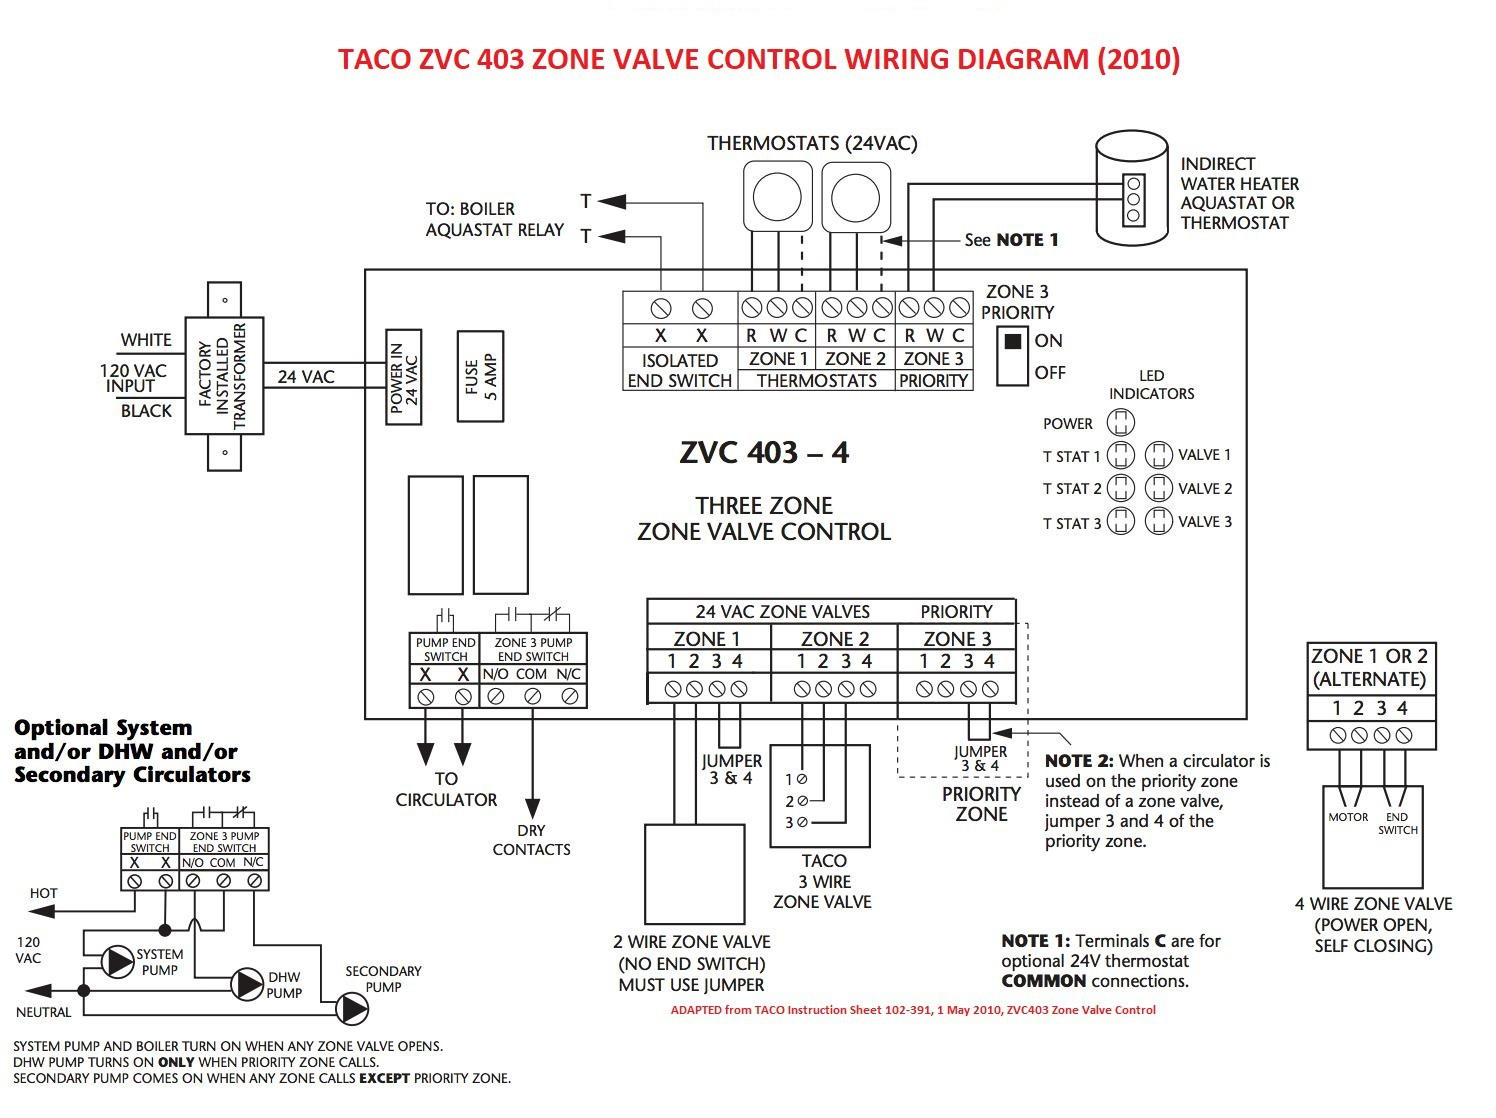 2 Taco Zone Relay Wiring Diagram | Wiring Diagram Nest Dry Contacts Wiring Diagrams on